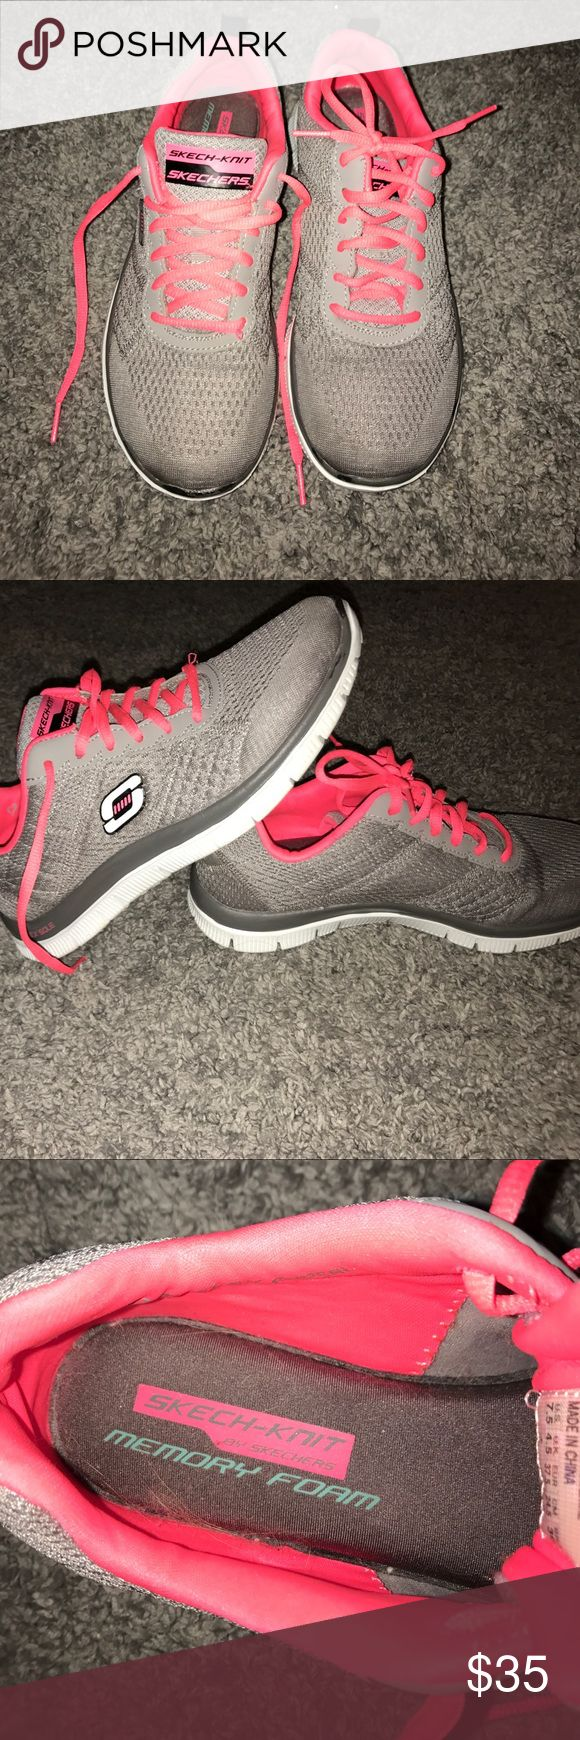 🔥SALE🔥 SKECHERS SKECH-KNIT MEMORY FOAM SHOES!!! HALF OFF! 💥Neon Pink and Gray Skechers Memory Foam Shoes. Only uses once or twice. They are size 7.5 U.S. Originally paid $50 for them.     ⚠️❌Sorry NO Trades❌⚠️     ❣️Willing to make an offer❣️ 🗯Comment for any questions or concerns🗯 Skechers Shoes Sneakers